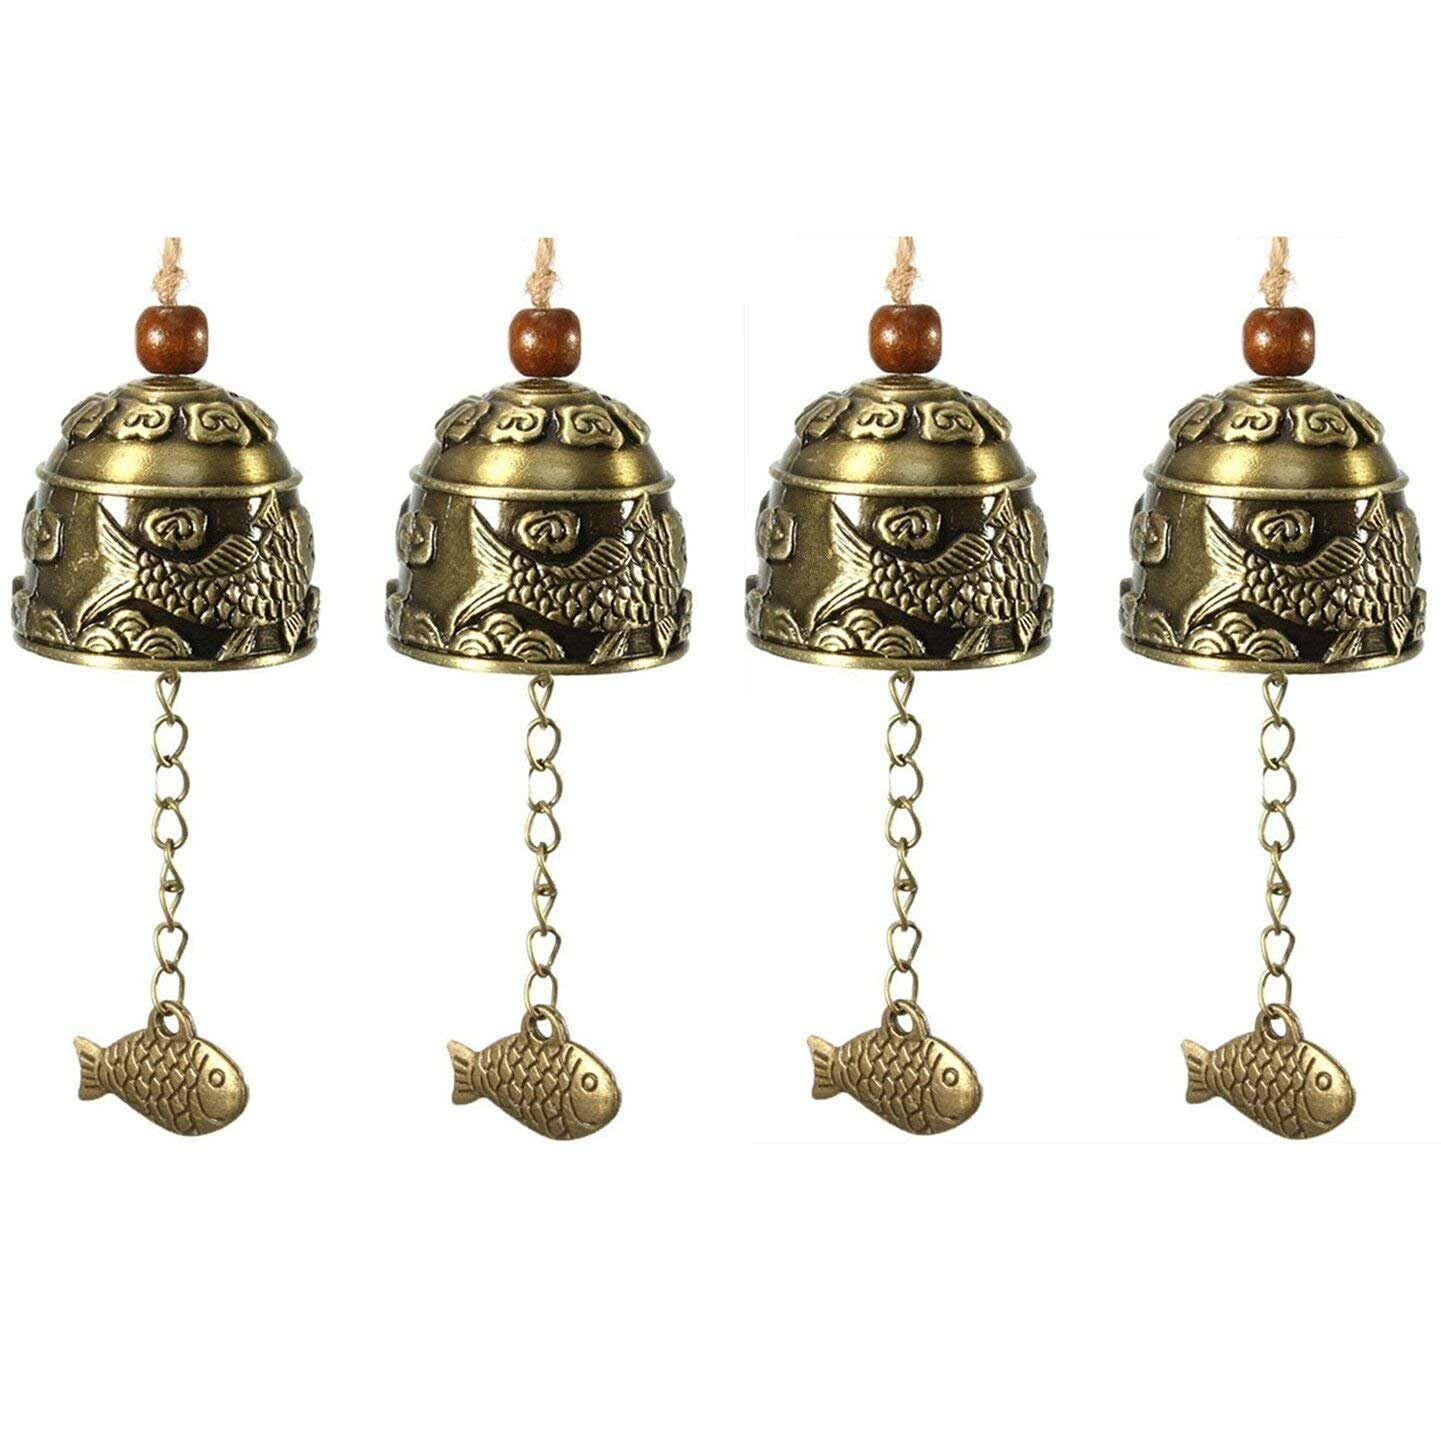 SWTOOL Selling Wonderful 4PCS Chinese Traditional Feng Shui Wind Chime - Vintage Style Fish Feng Shui Bell For Good Luck Blessing Fortune Home Car Crafts Hanging Decoration Gift